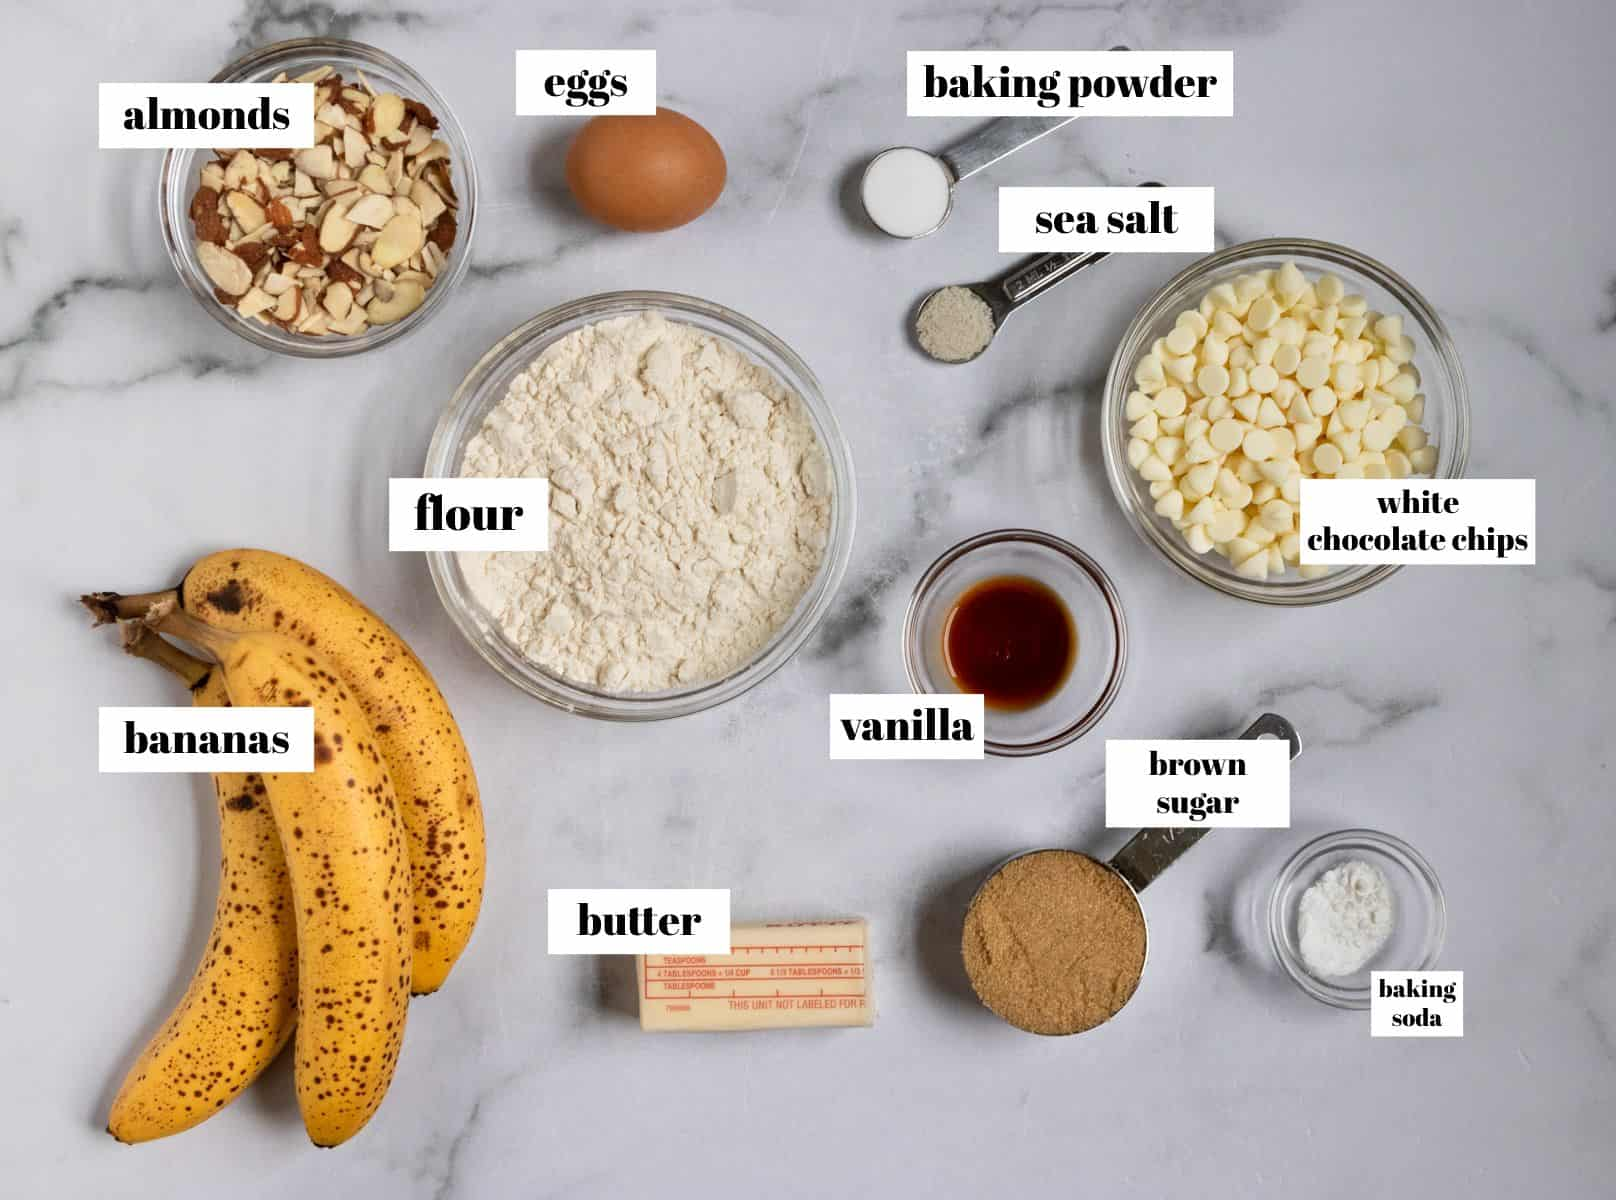 Ingredients needed to make banana bread on white counter.